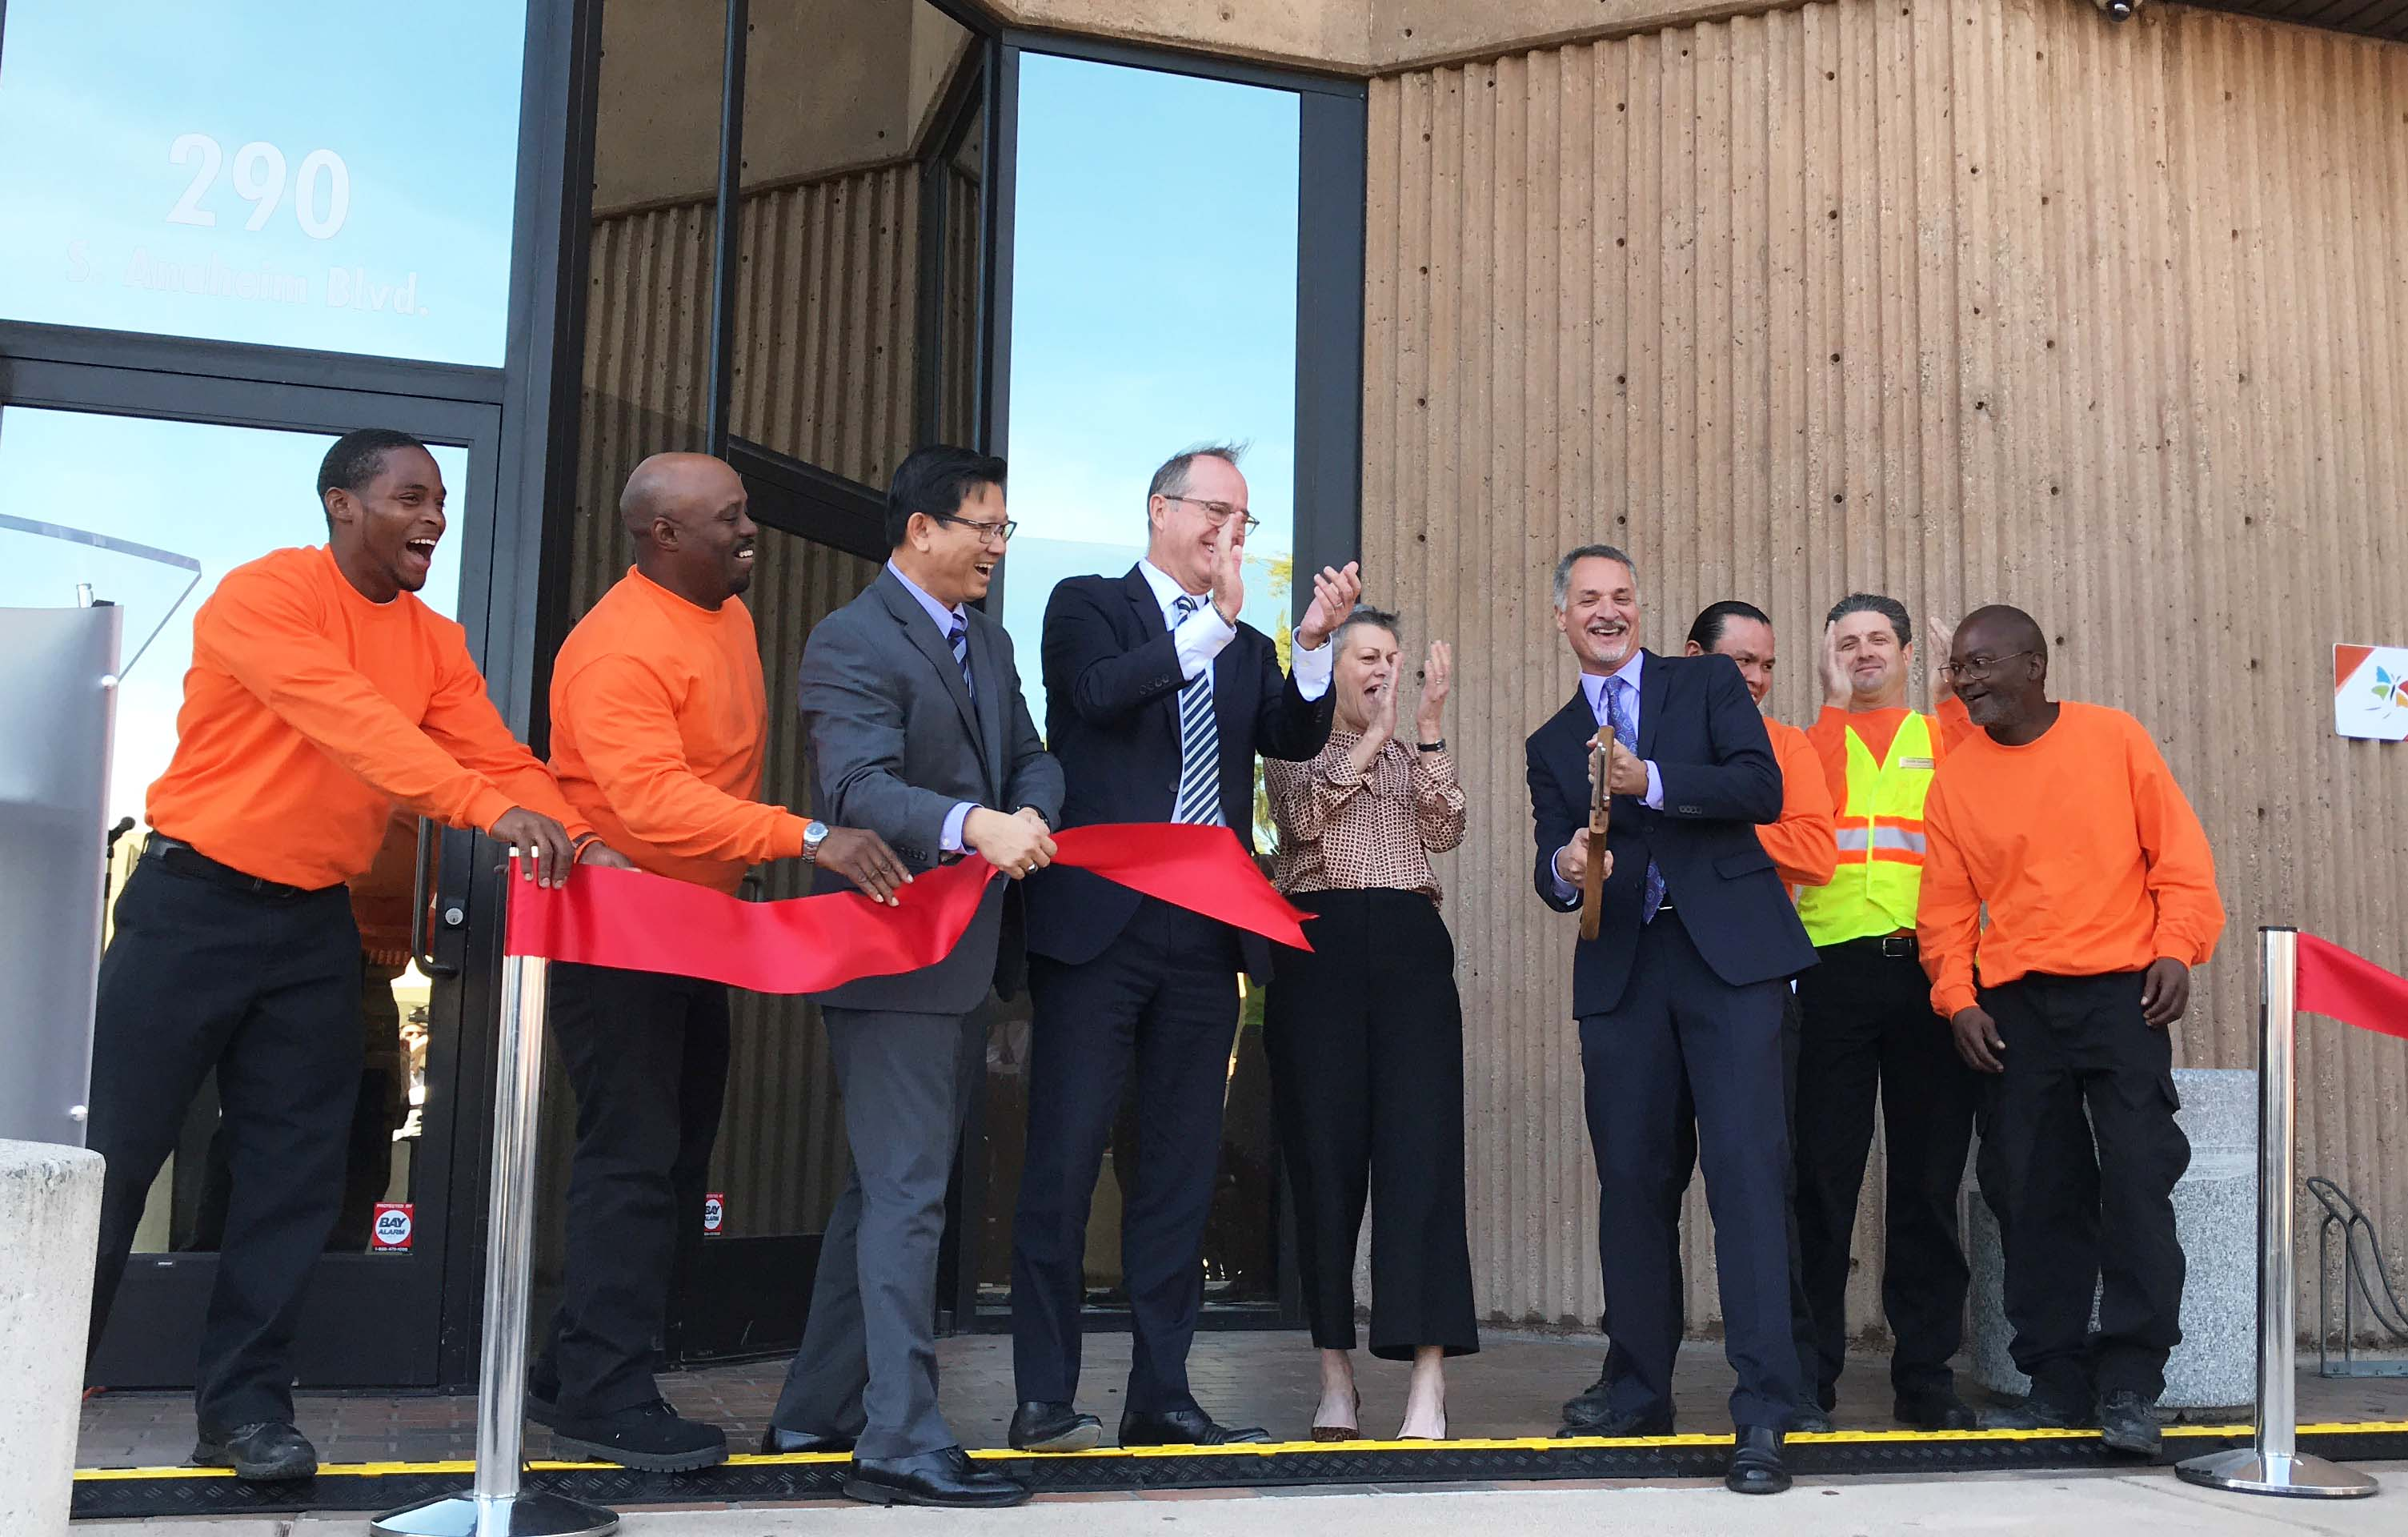 Chrysalis ribbon cutting